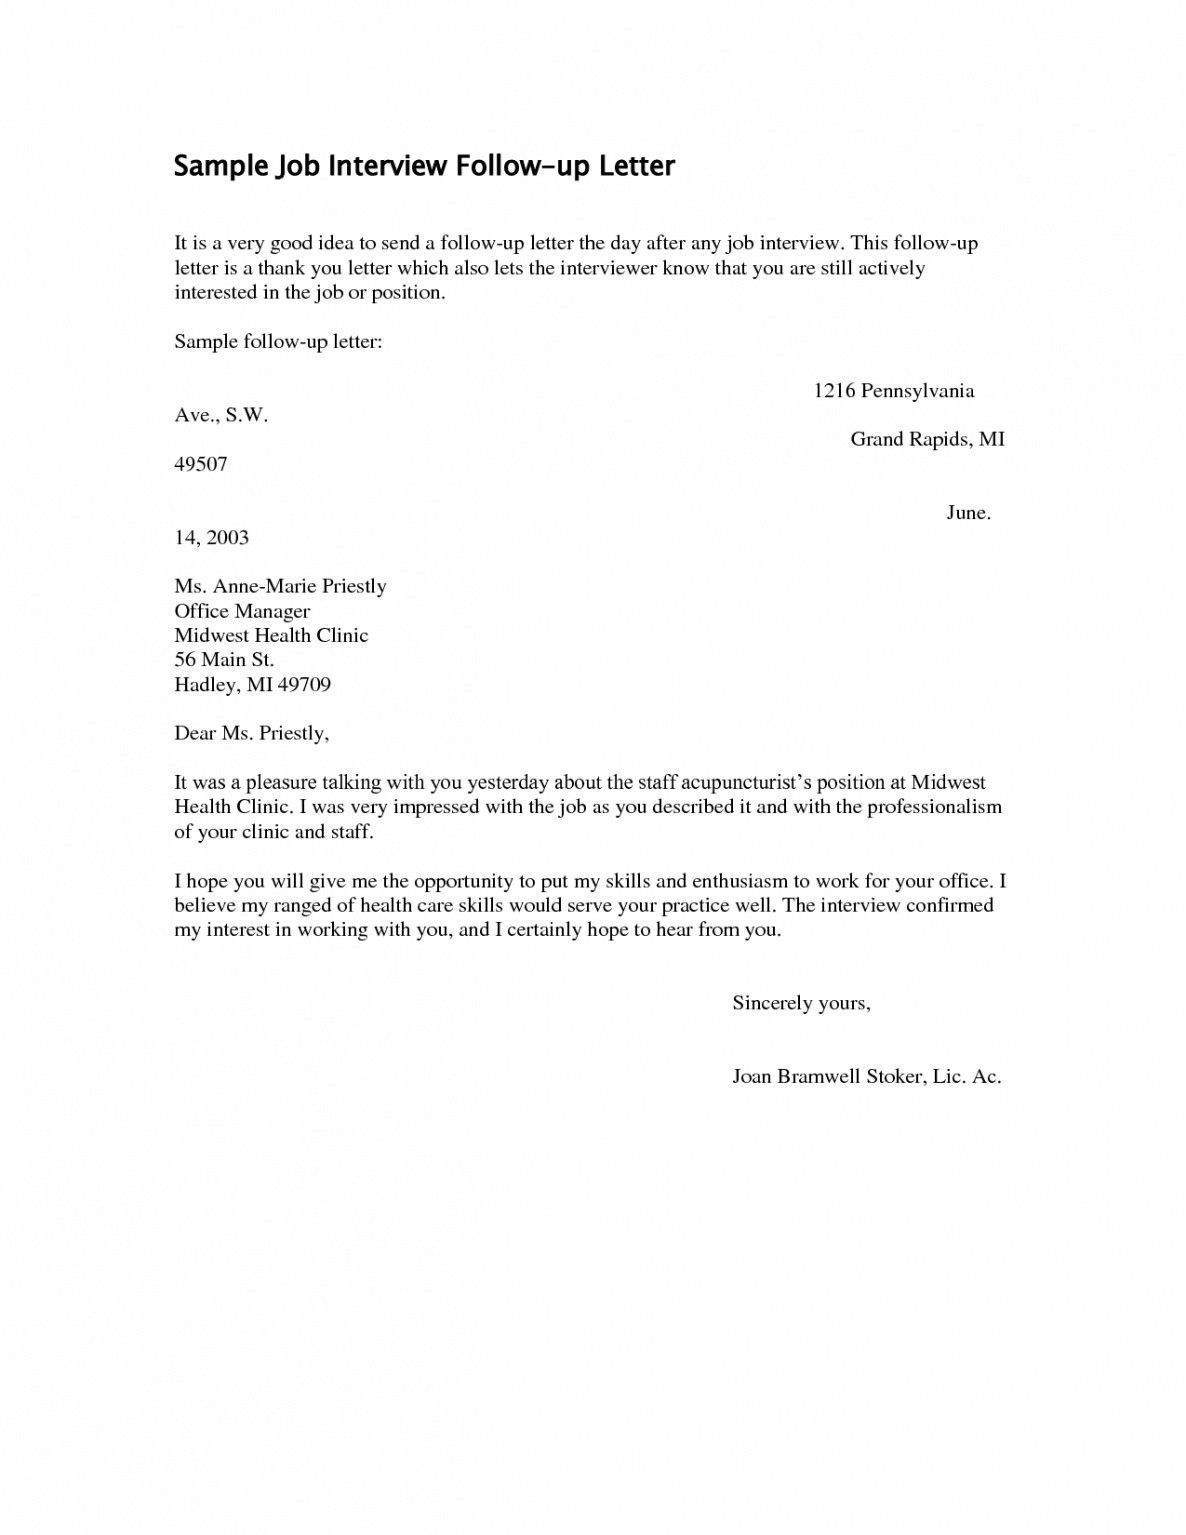 Best Interested In Job Email Template Excel Example In 2021 Job Application Lettering Job